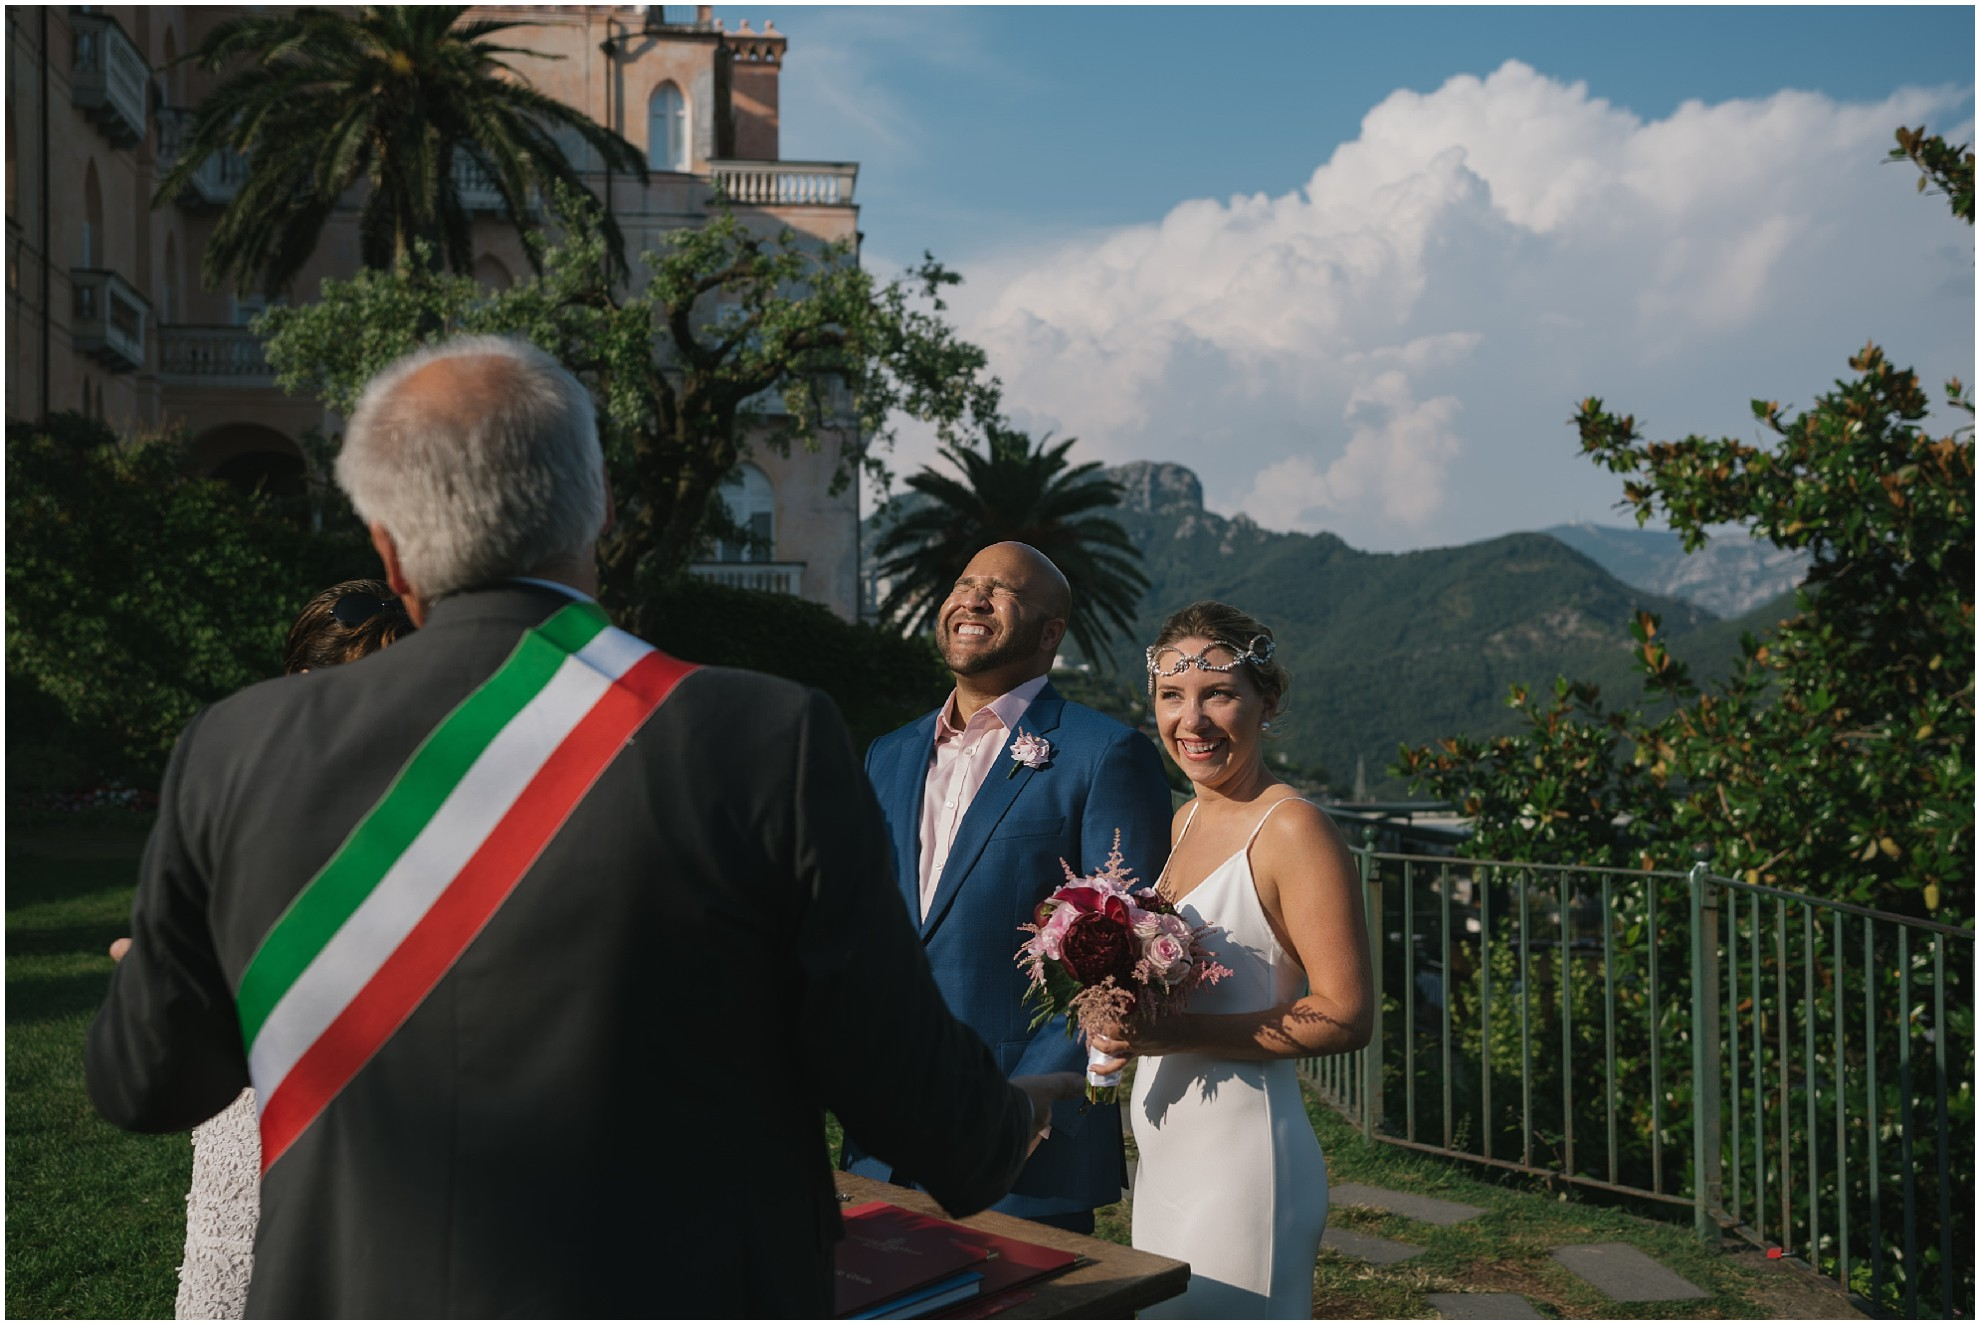 amalfi coast wedding photographer luca tibberio